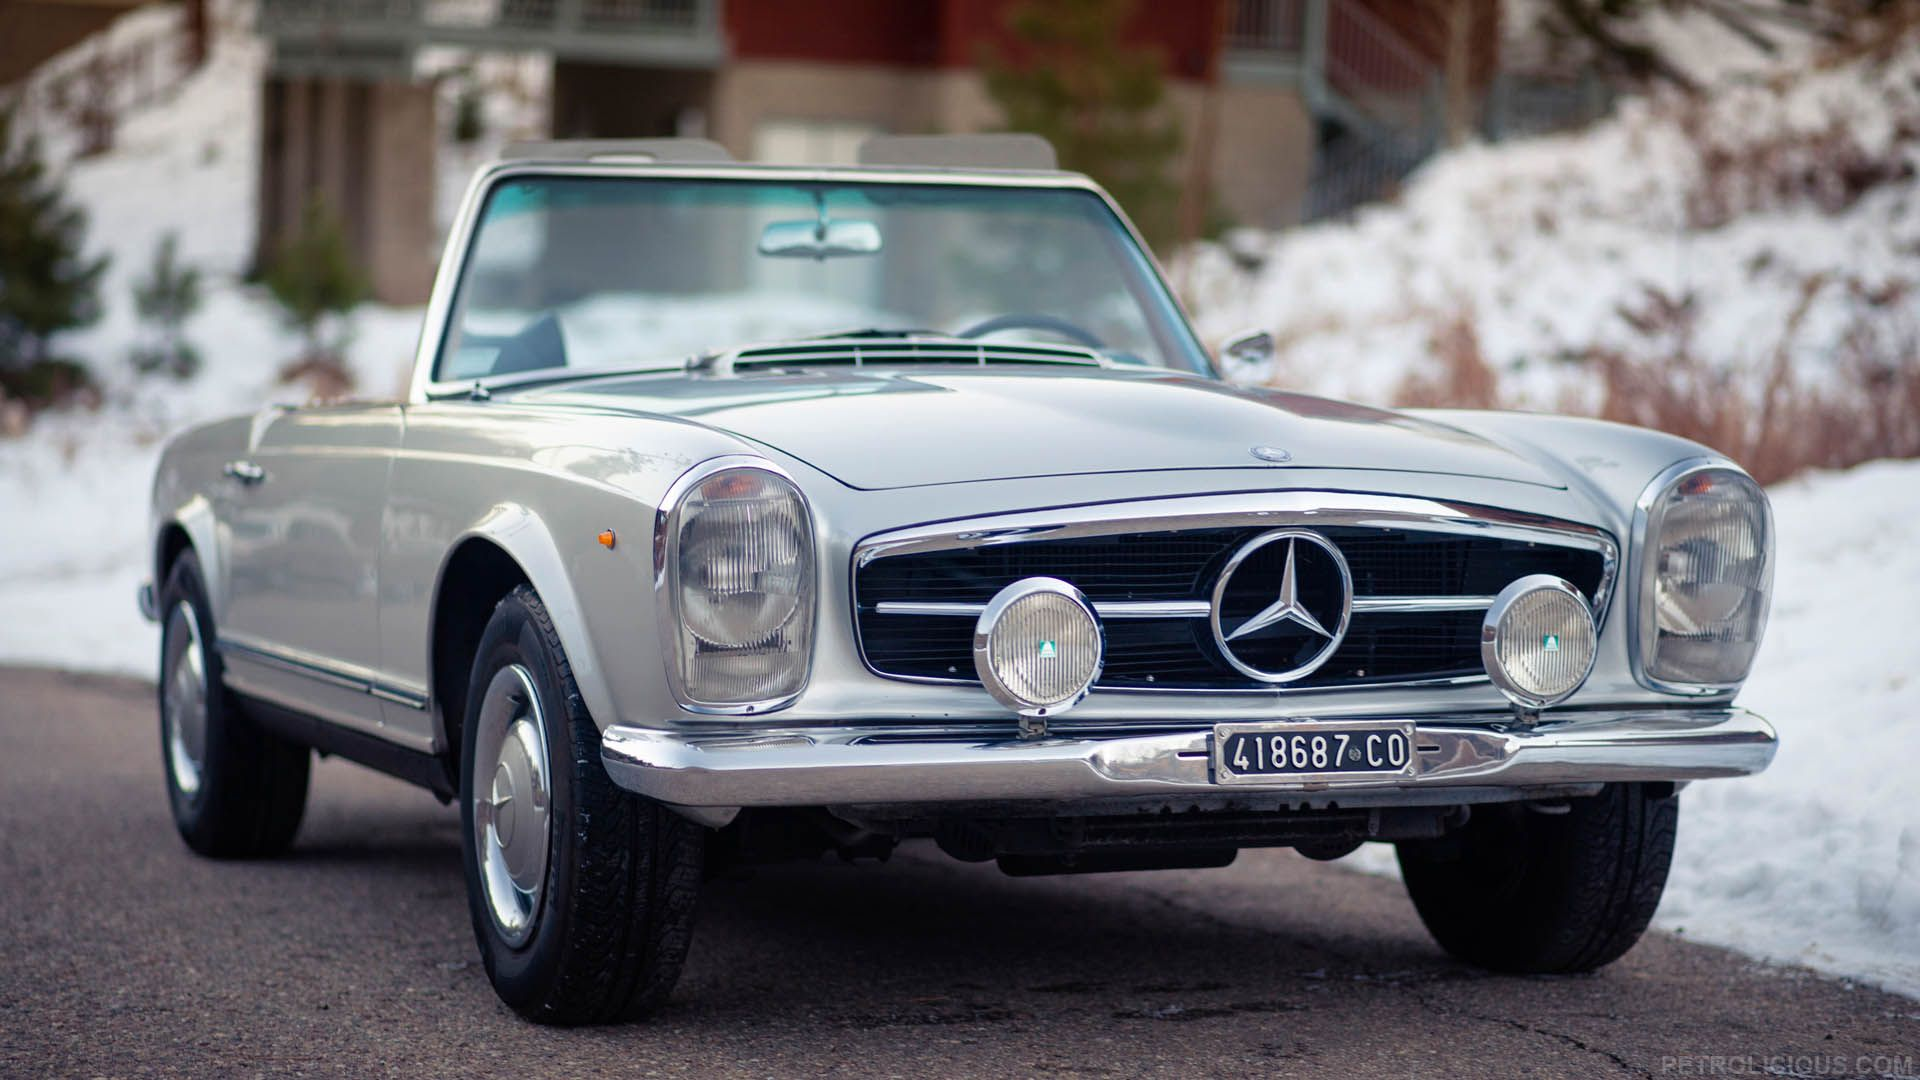 Mercedes benz mechanic preserves history in arizona for Mercedes benz vintage cars